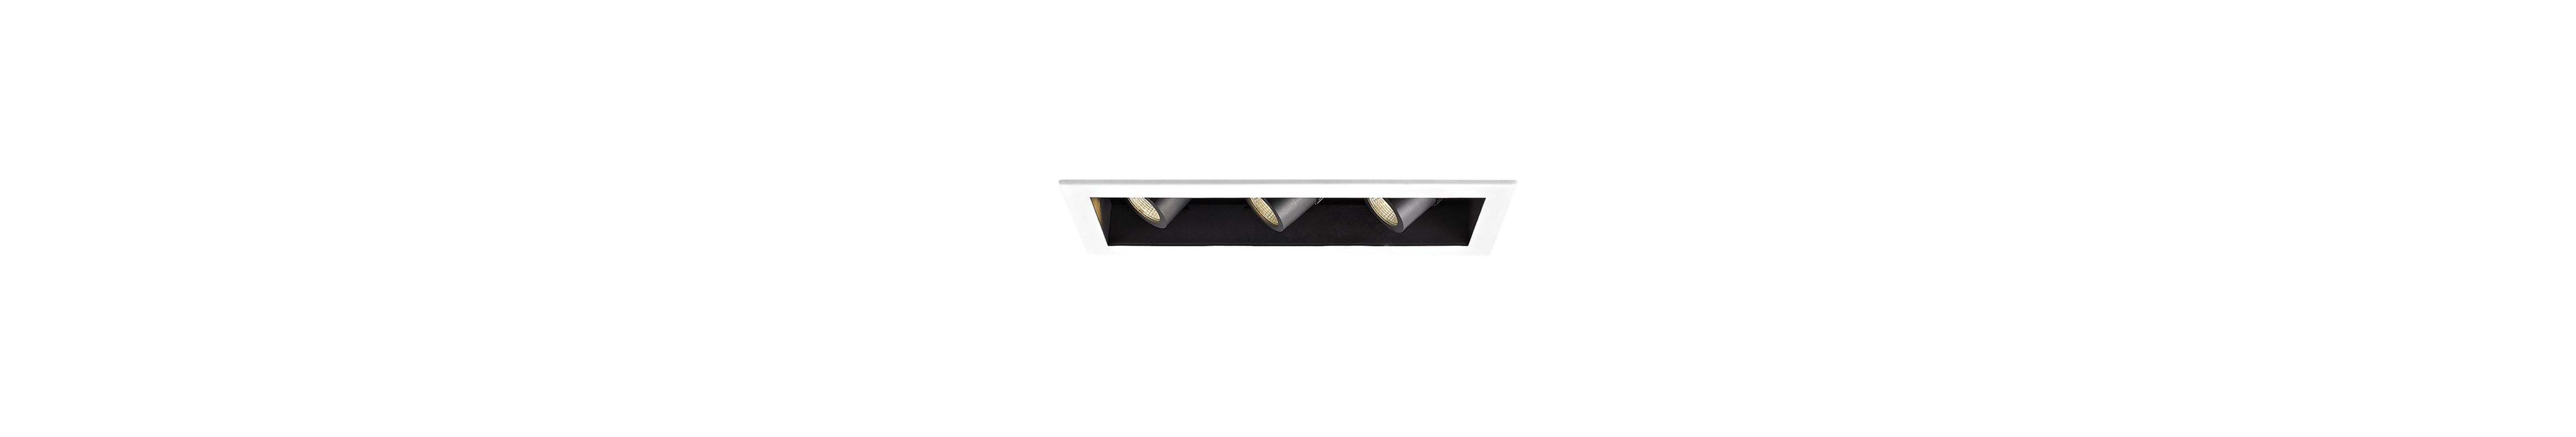 "WAC Lighting MT-4LD316N-F927 4"" Trim 2700K High Output LED Recessed"